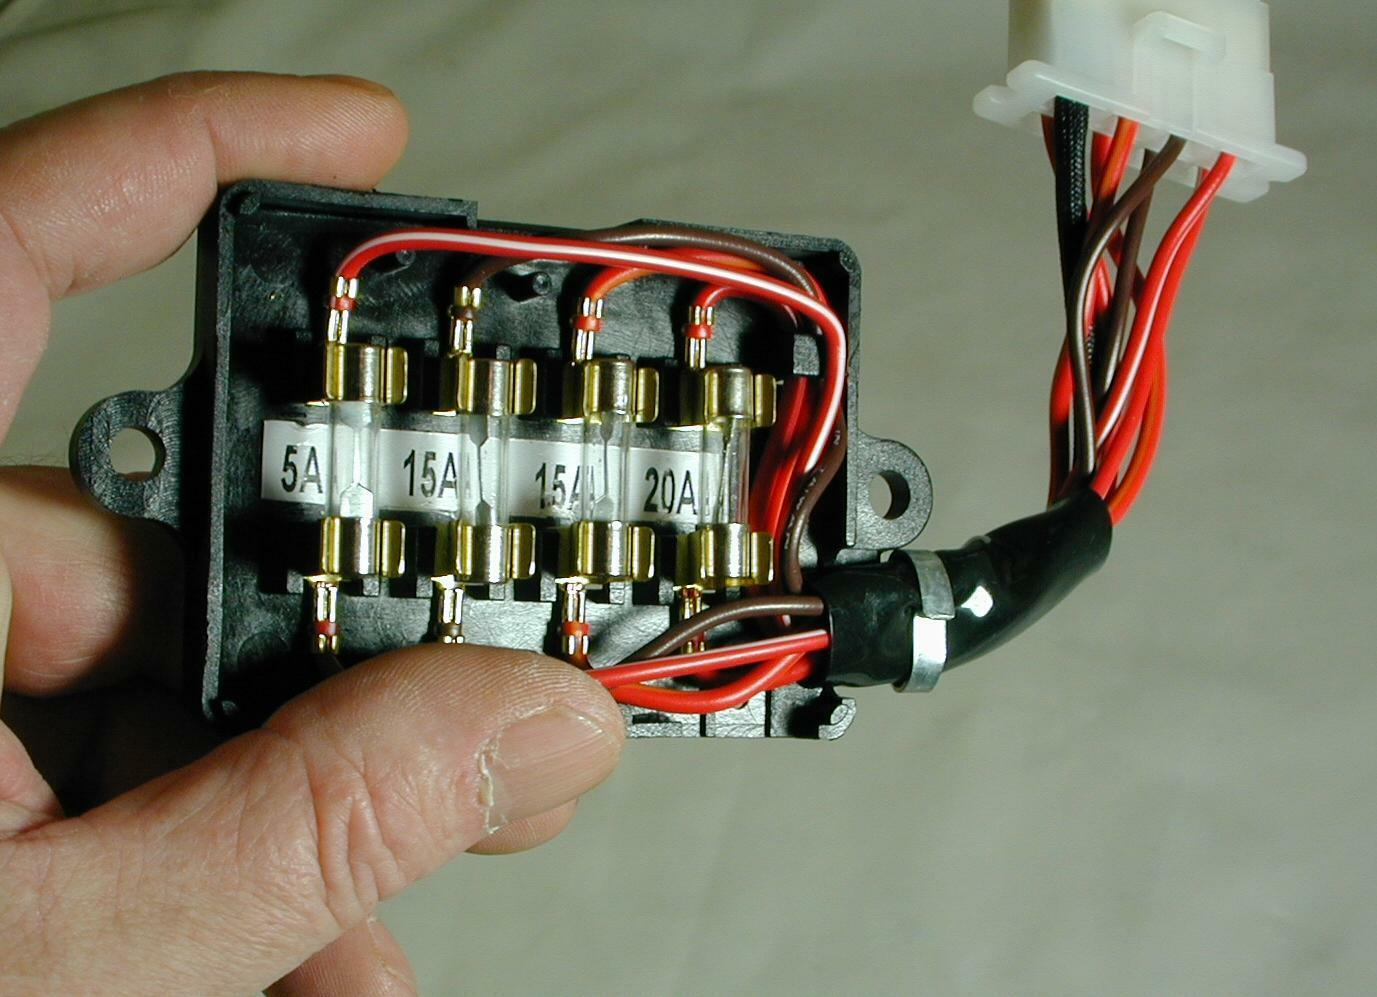 Fuse Box On Yamaha Virago Wiring Library Xs650 Simple Diagram Electronic Ignition New Fits Xs750 Xs850 Qfb4a 1 Of 1free Shipping See